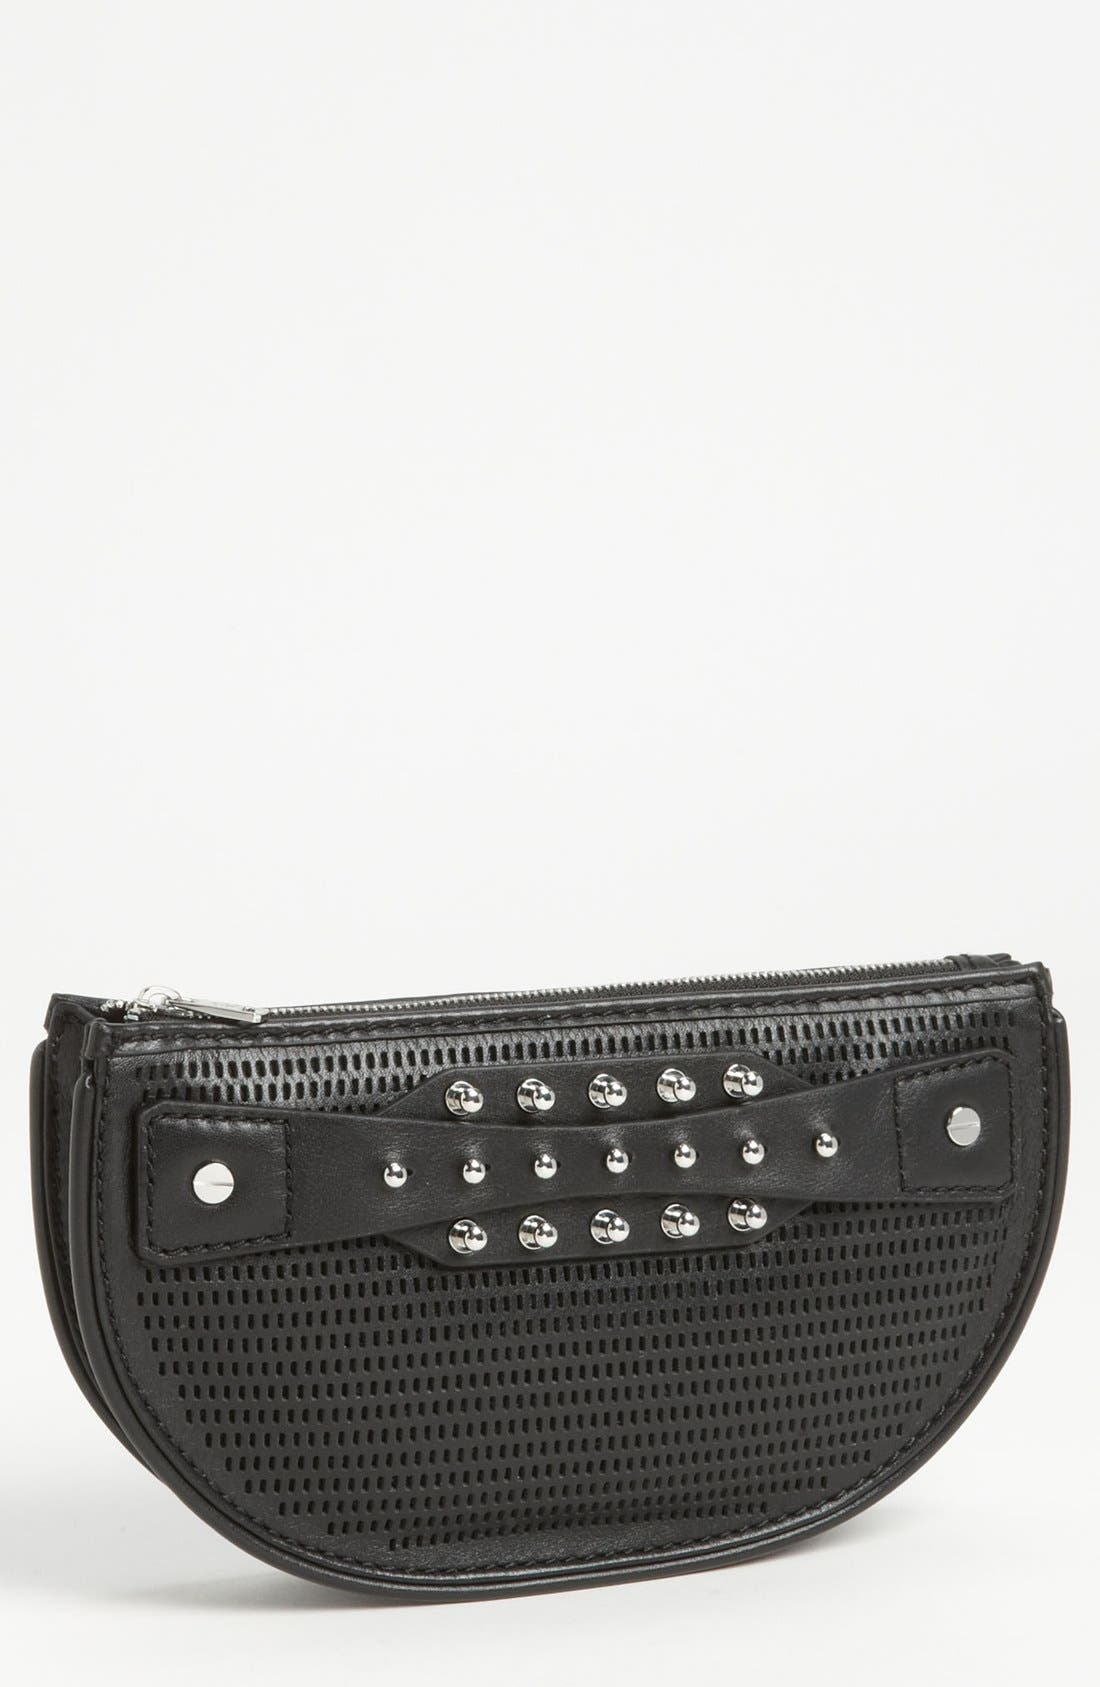 Main Image - McQ by Alexander McQueen 'Collar Stud - Mini' Perforated Leather Clutch